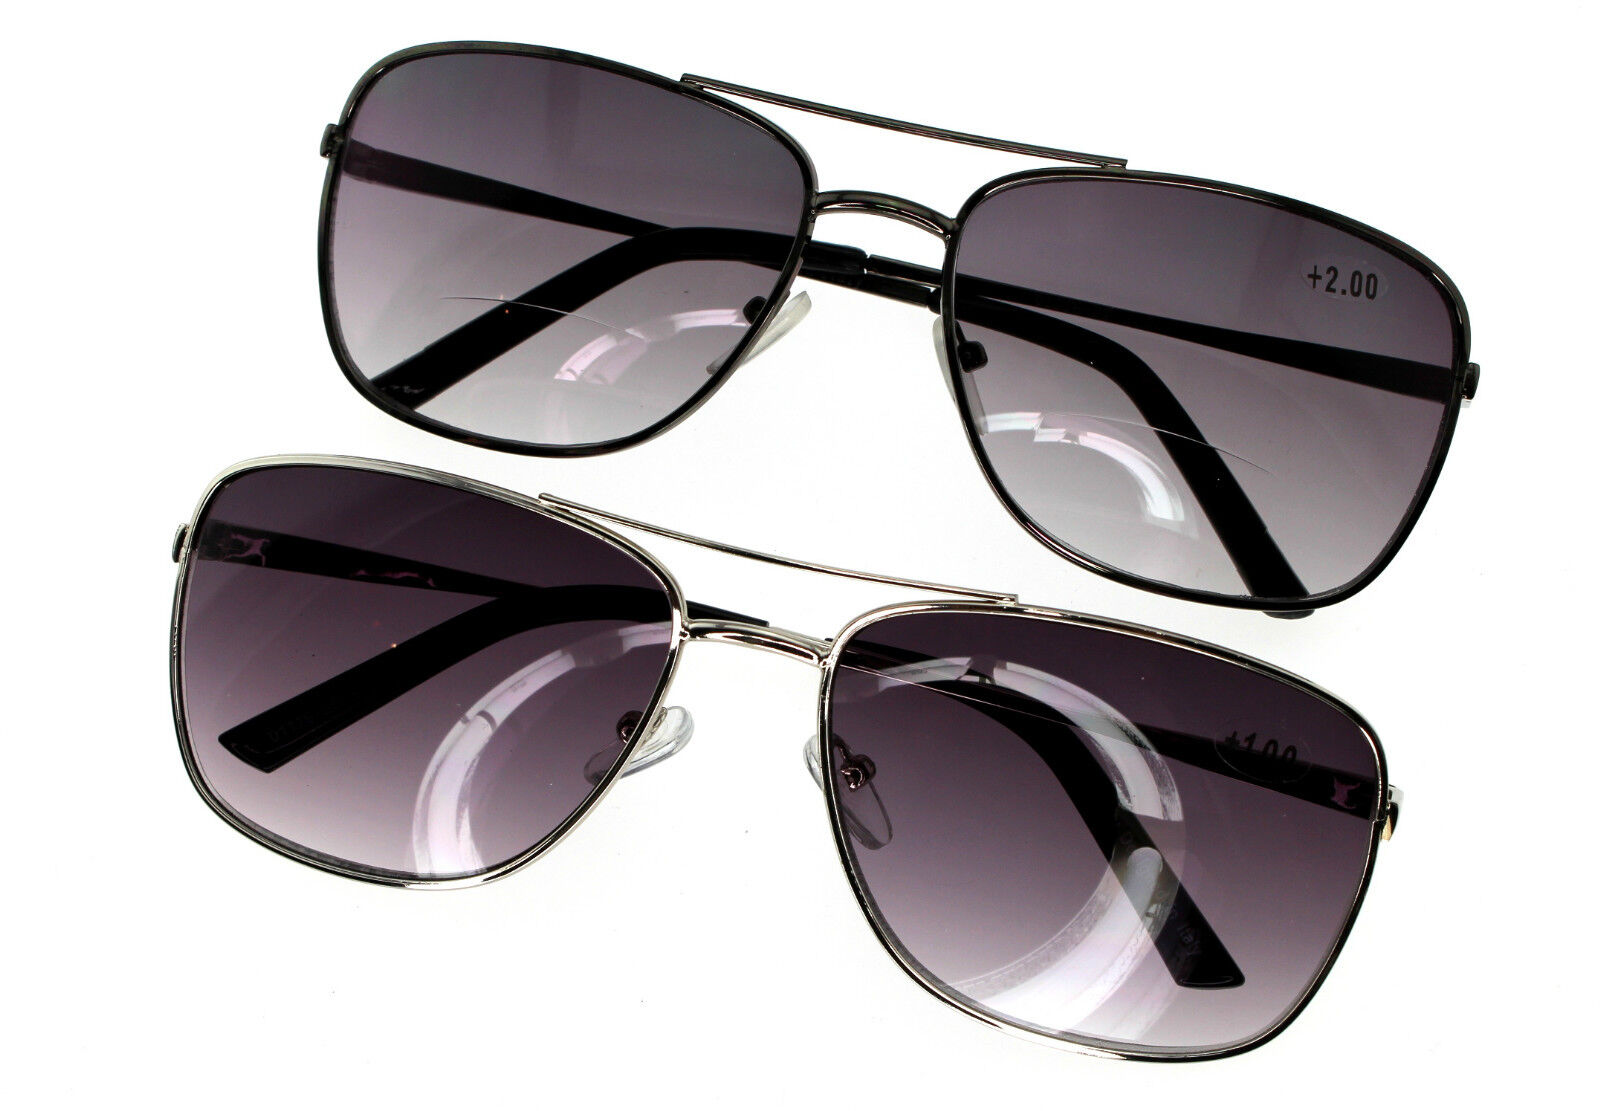 99042664f8 Sunglasses With Magnifiers For Reading